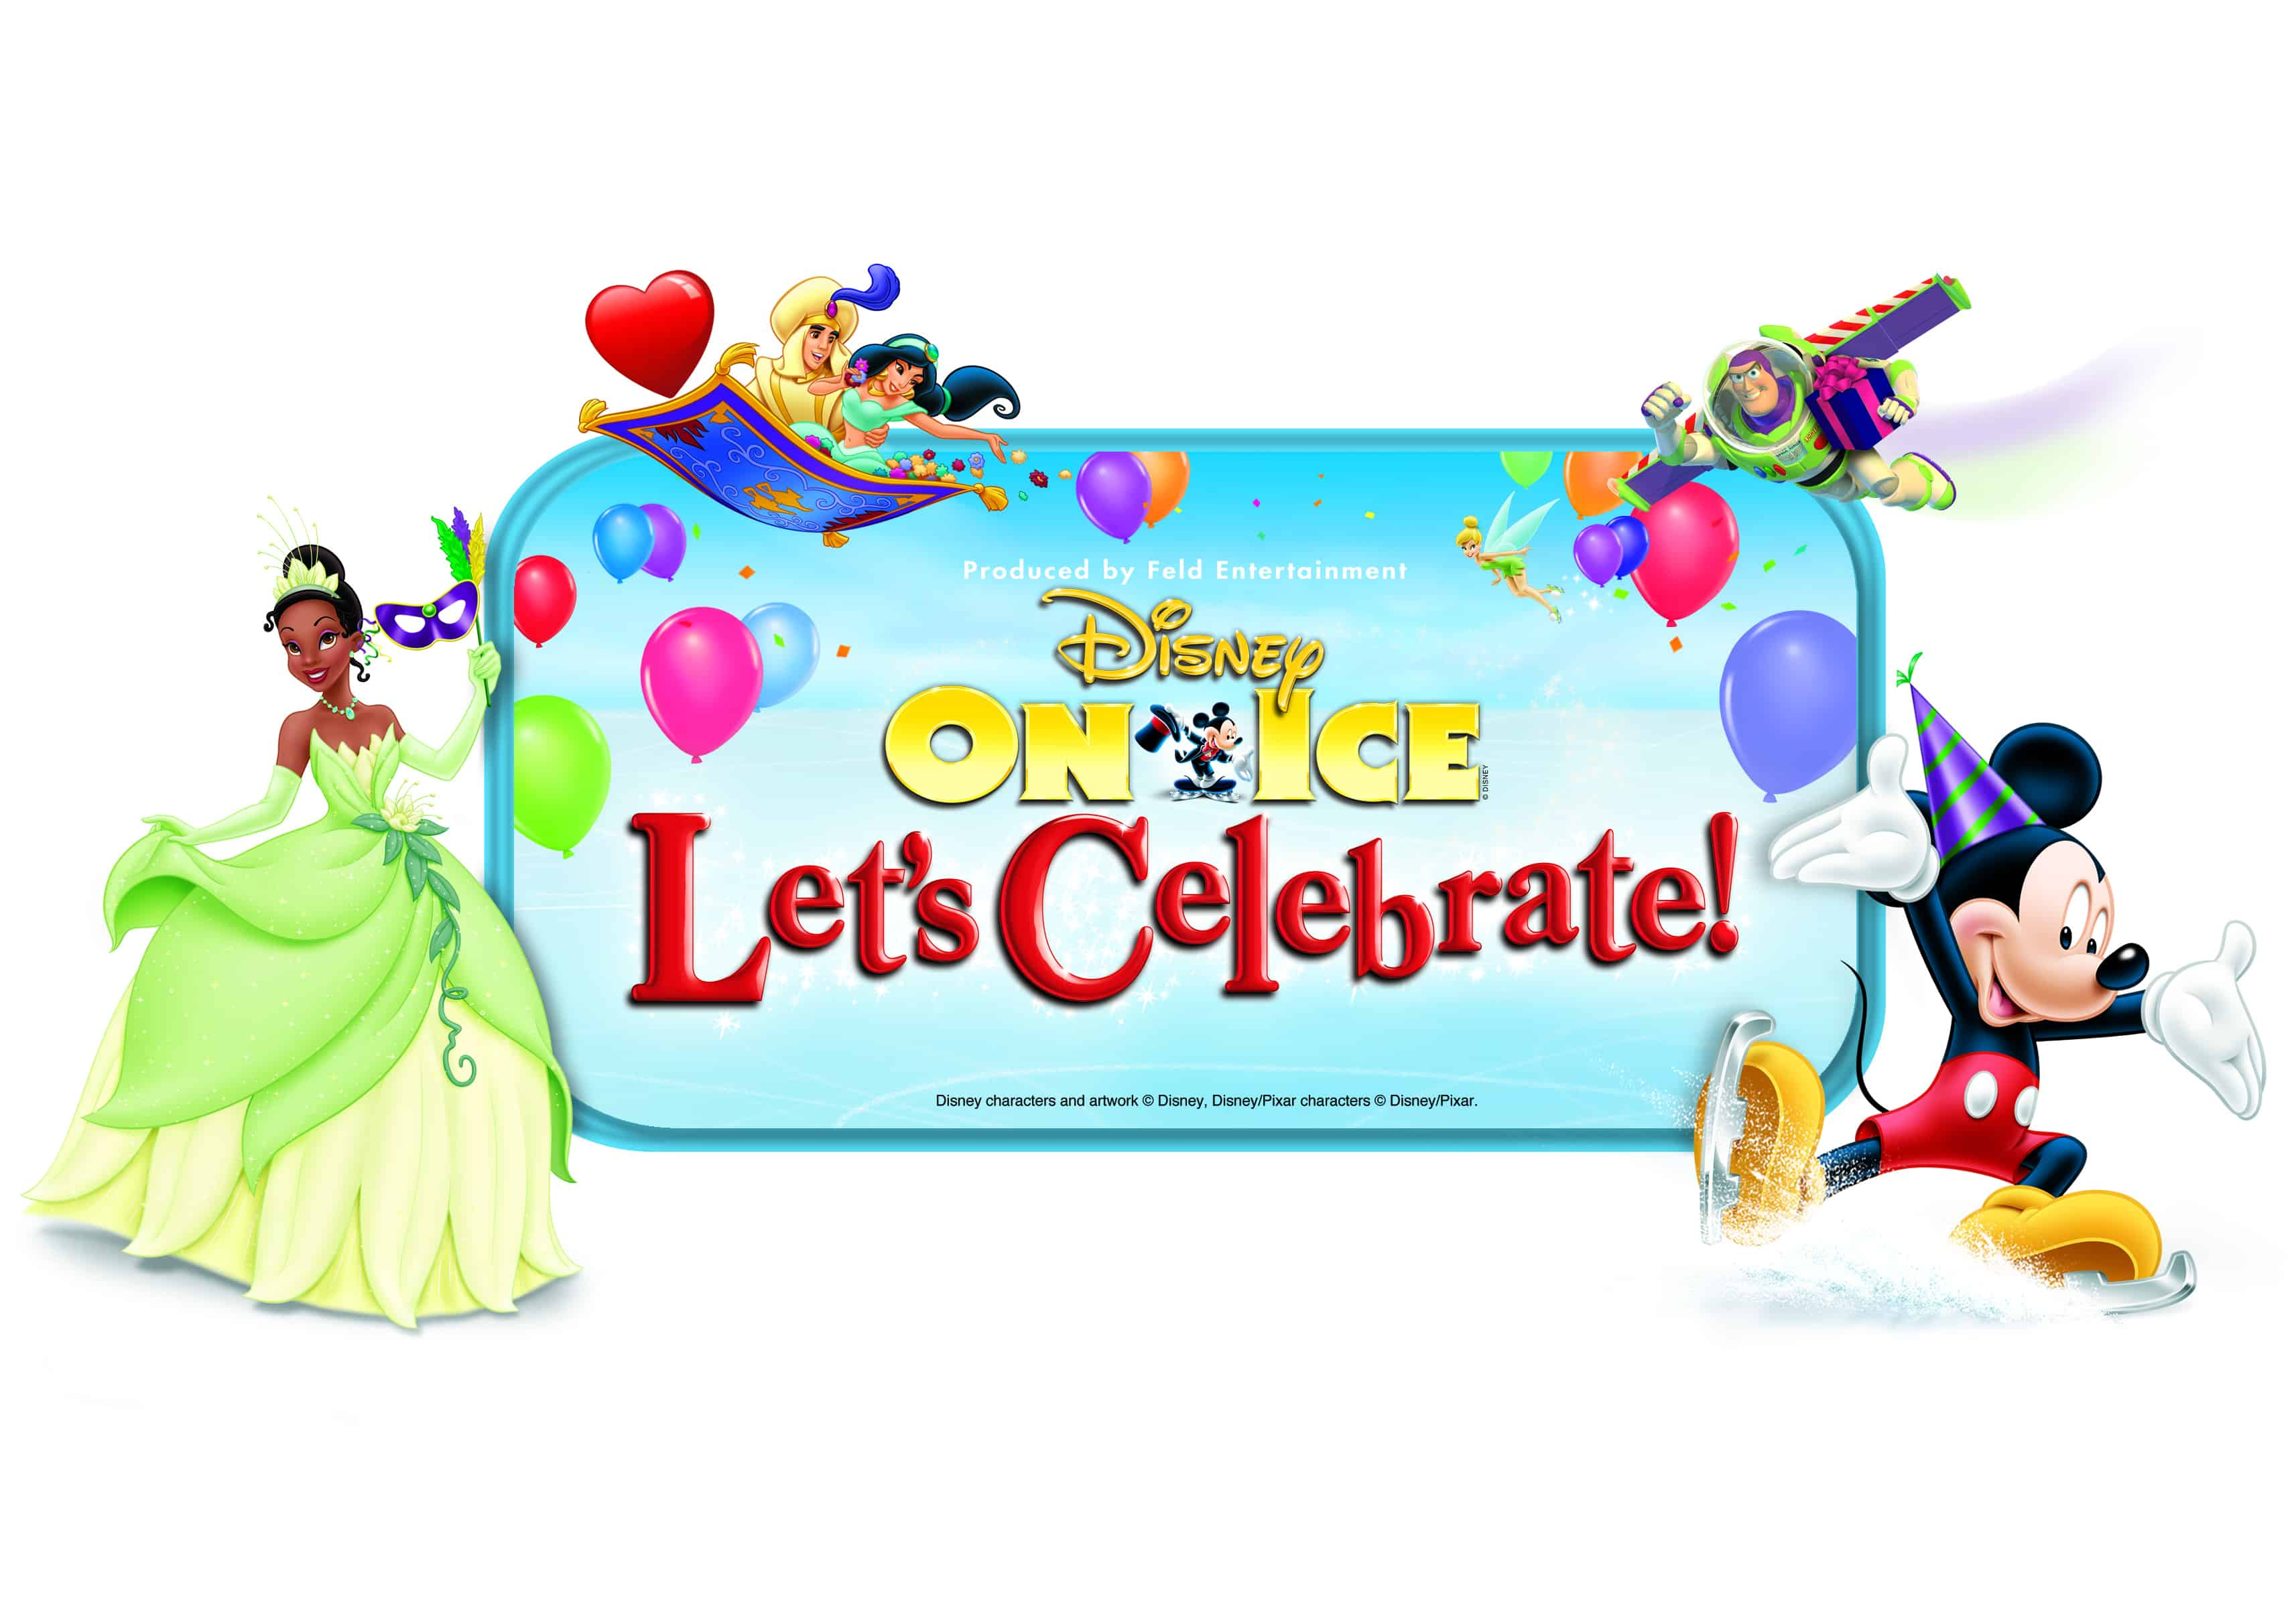 Disney on Ice – Let's Celebrate!